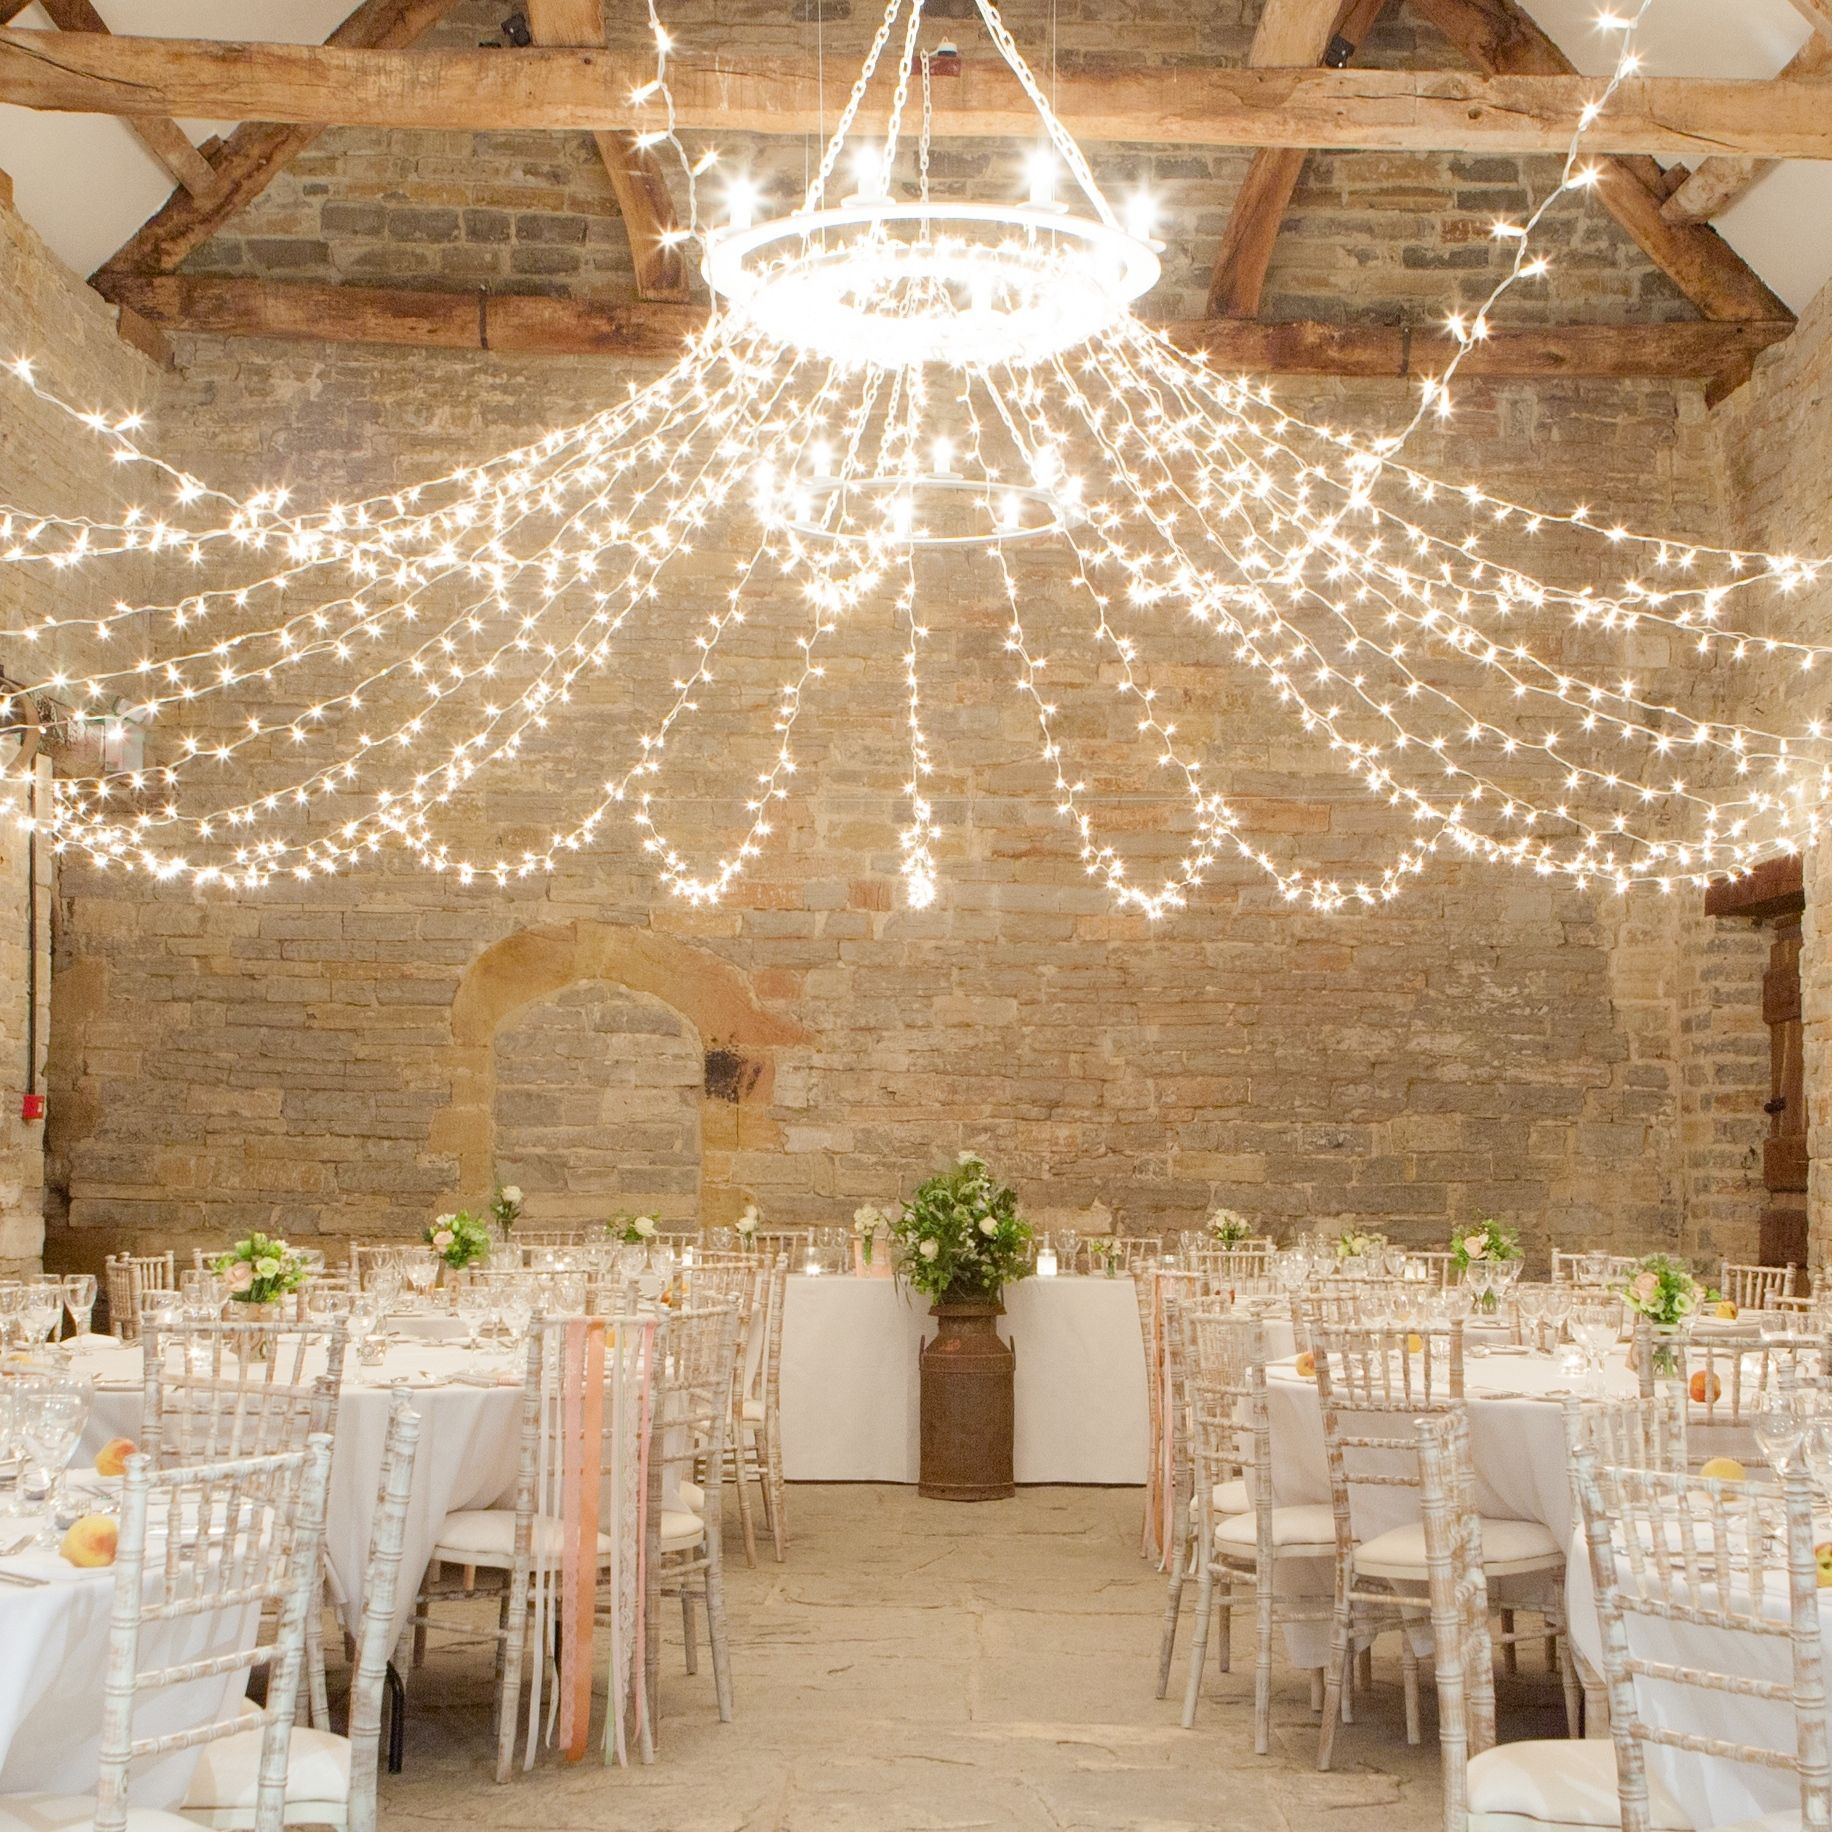 Images Of Rustic Wedding Venues: Pin By Ashley Booth On Future Mrs. Cebula